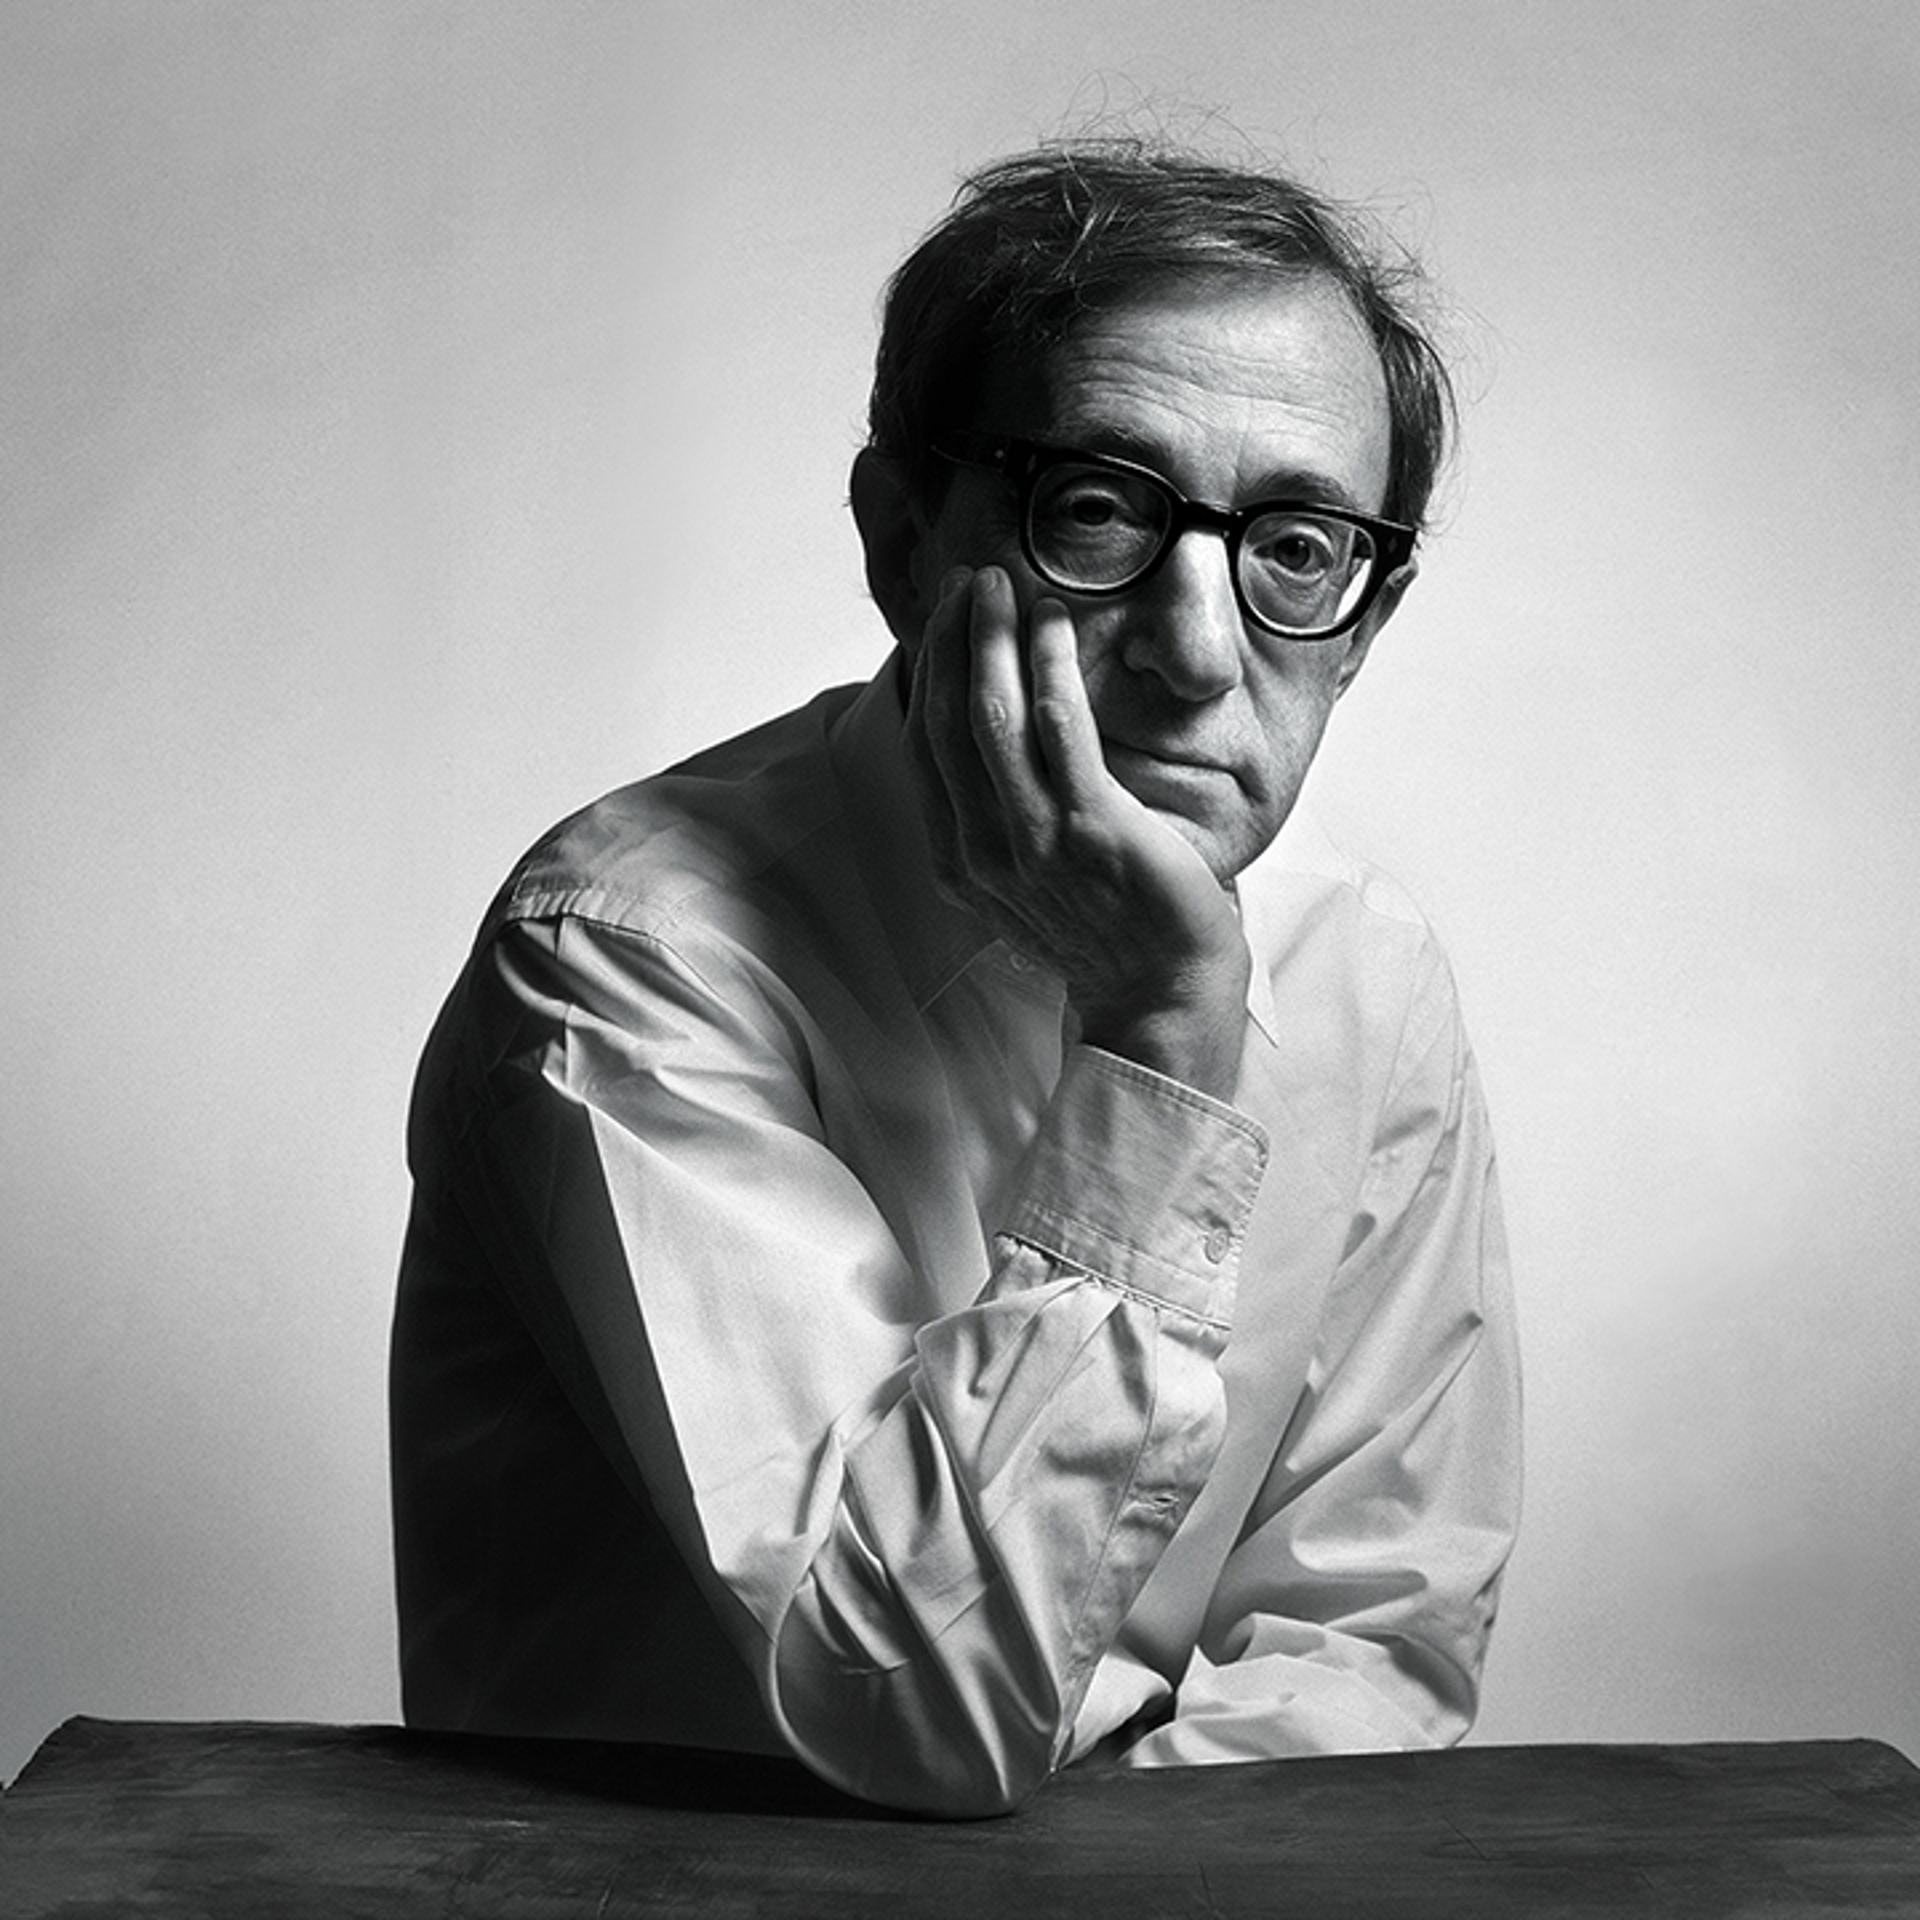 94095 Woody Allen Hand Up BW by Timothy White